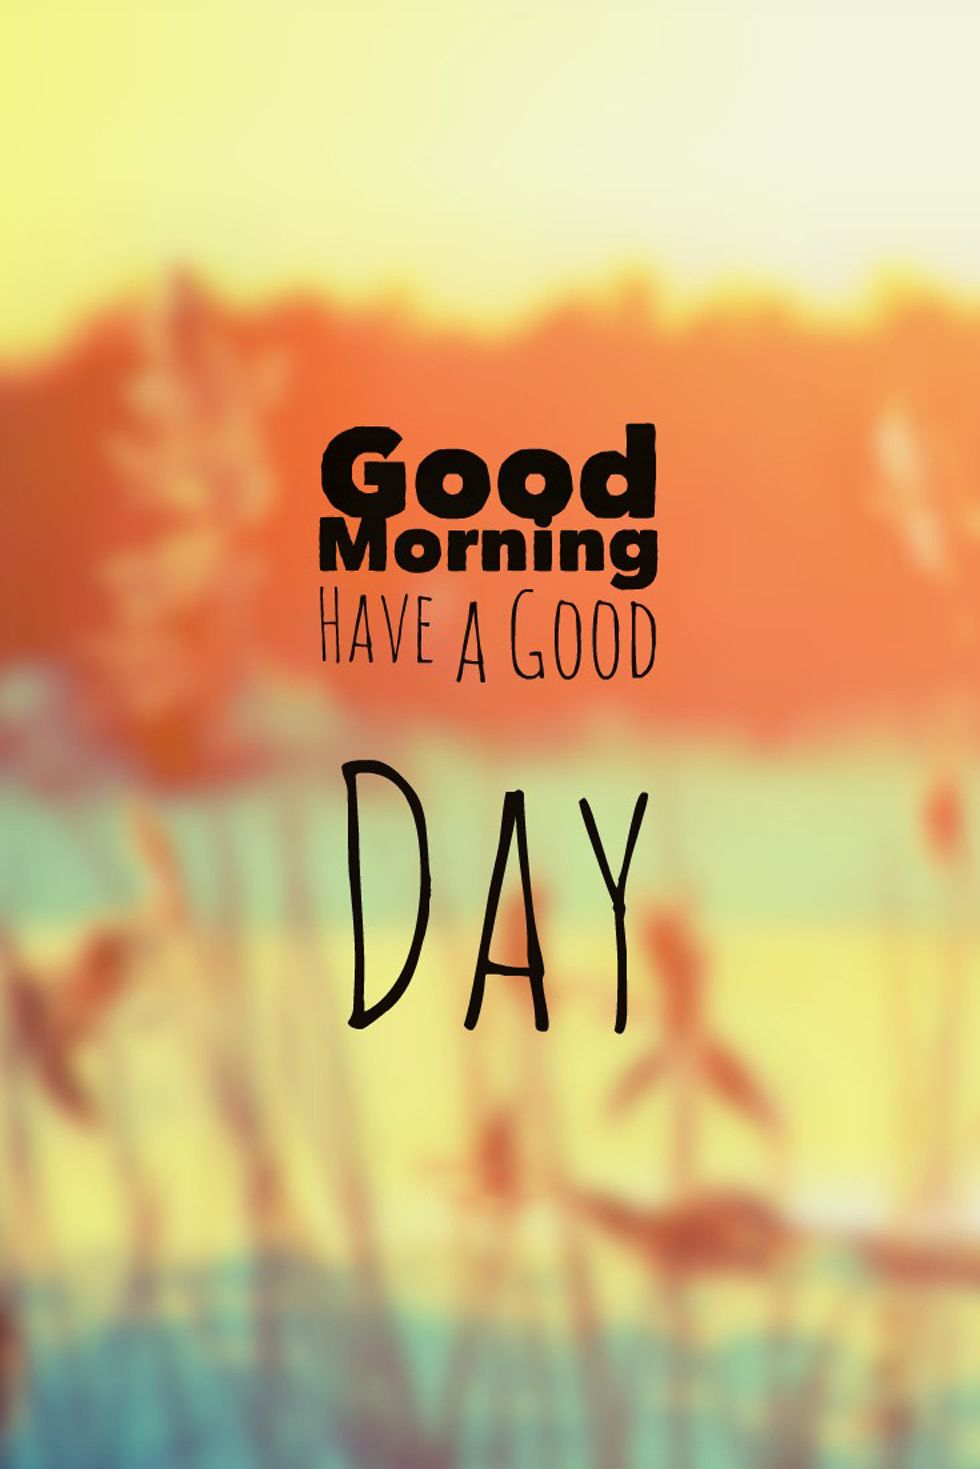 Good Morning Quotes Pinterest Morning Quotes Good Morning